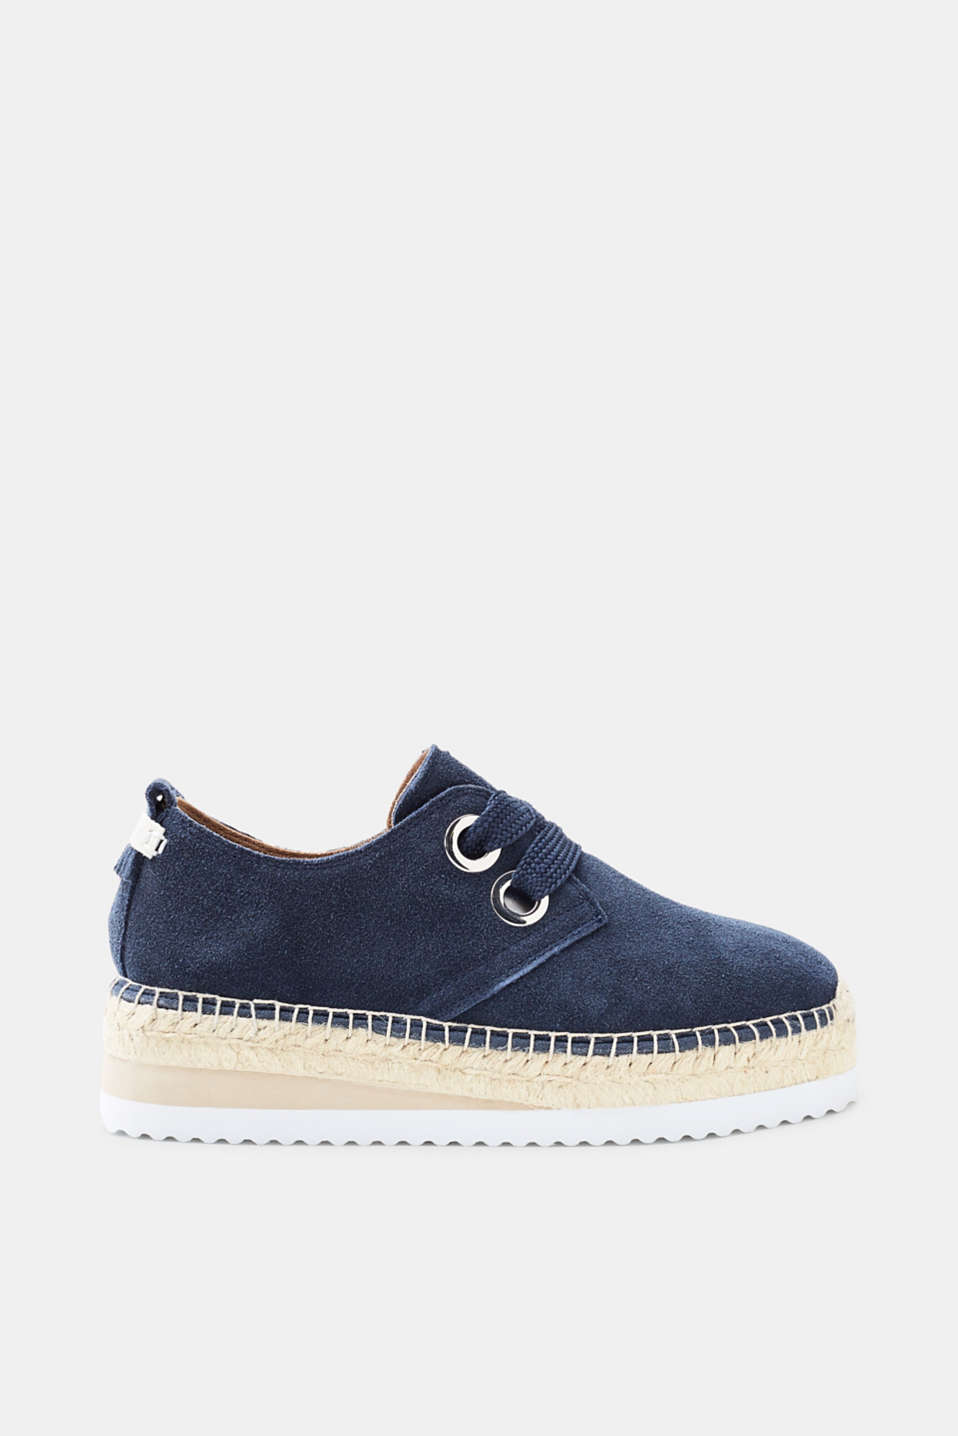 Flatform trend meets summer classic! The platform sole gives these suede espadrilles a trendy look.